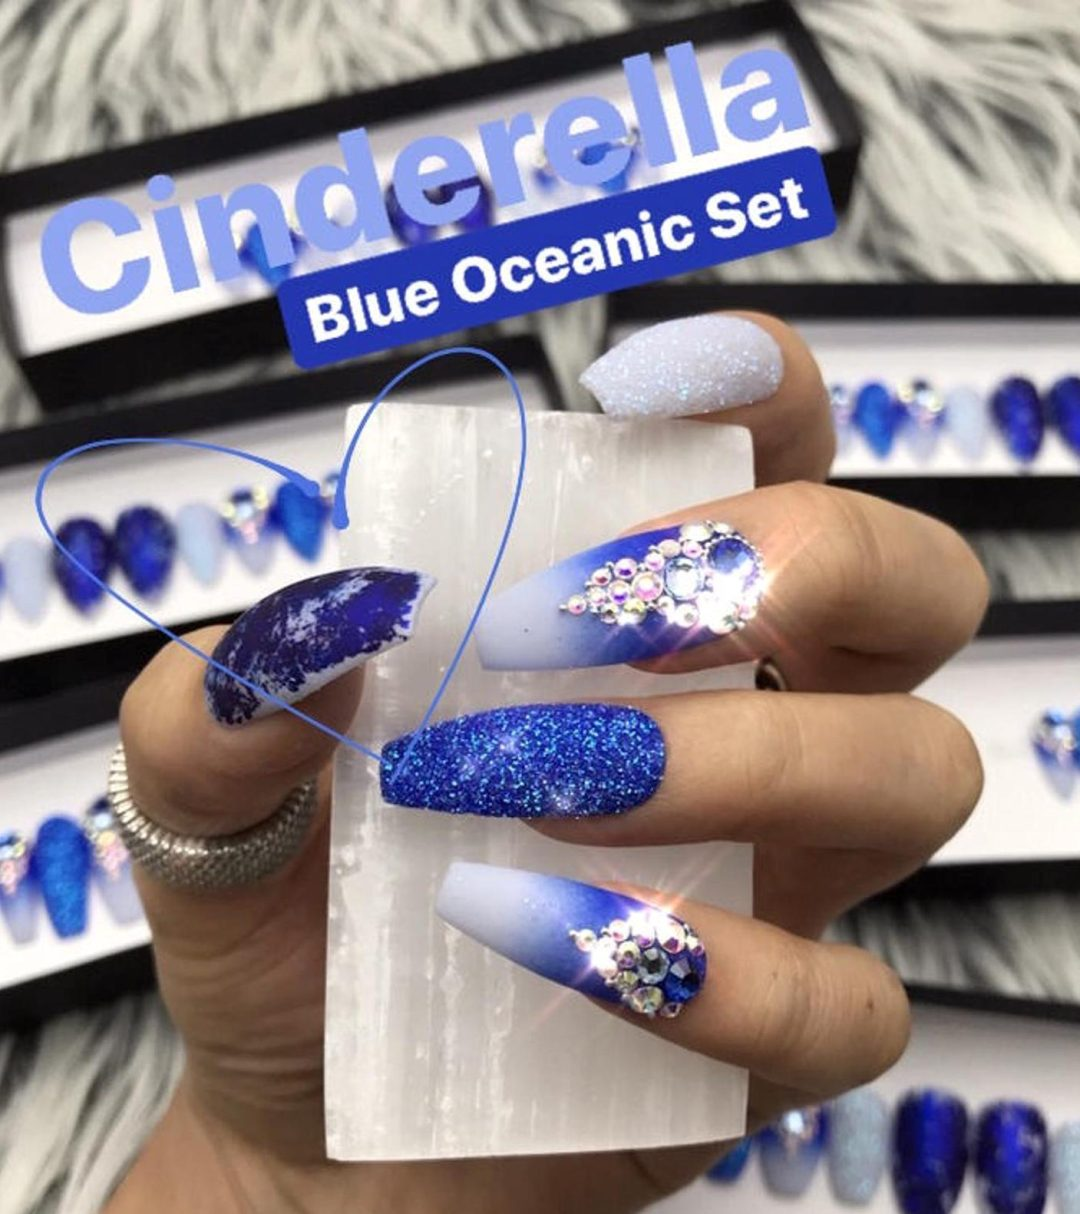 White and dark blue ombre nails with glitter and rhinestones